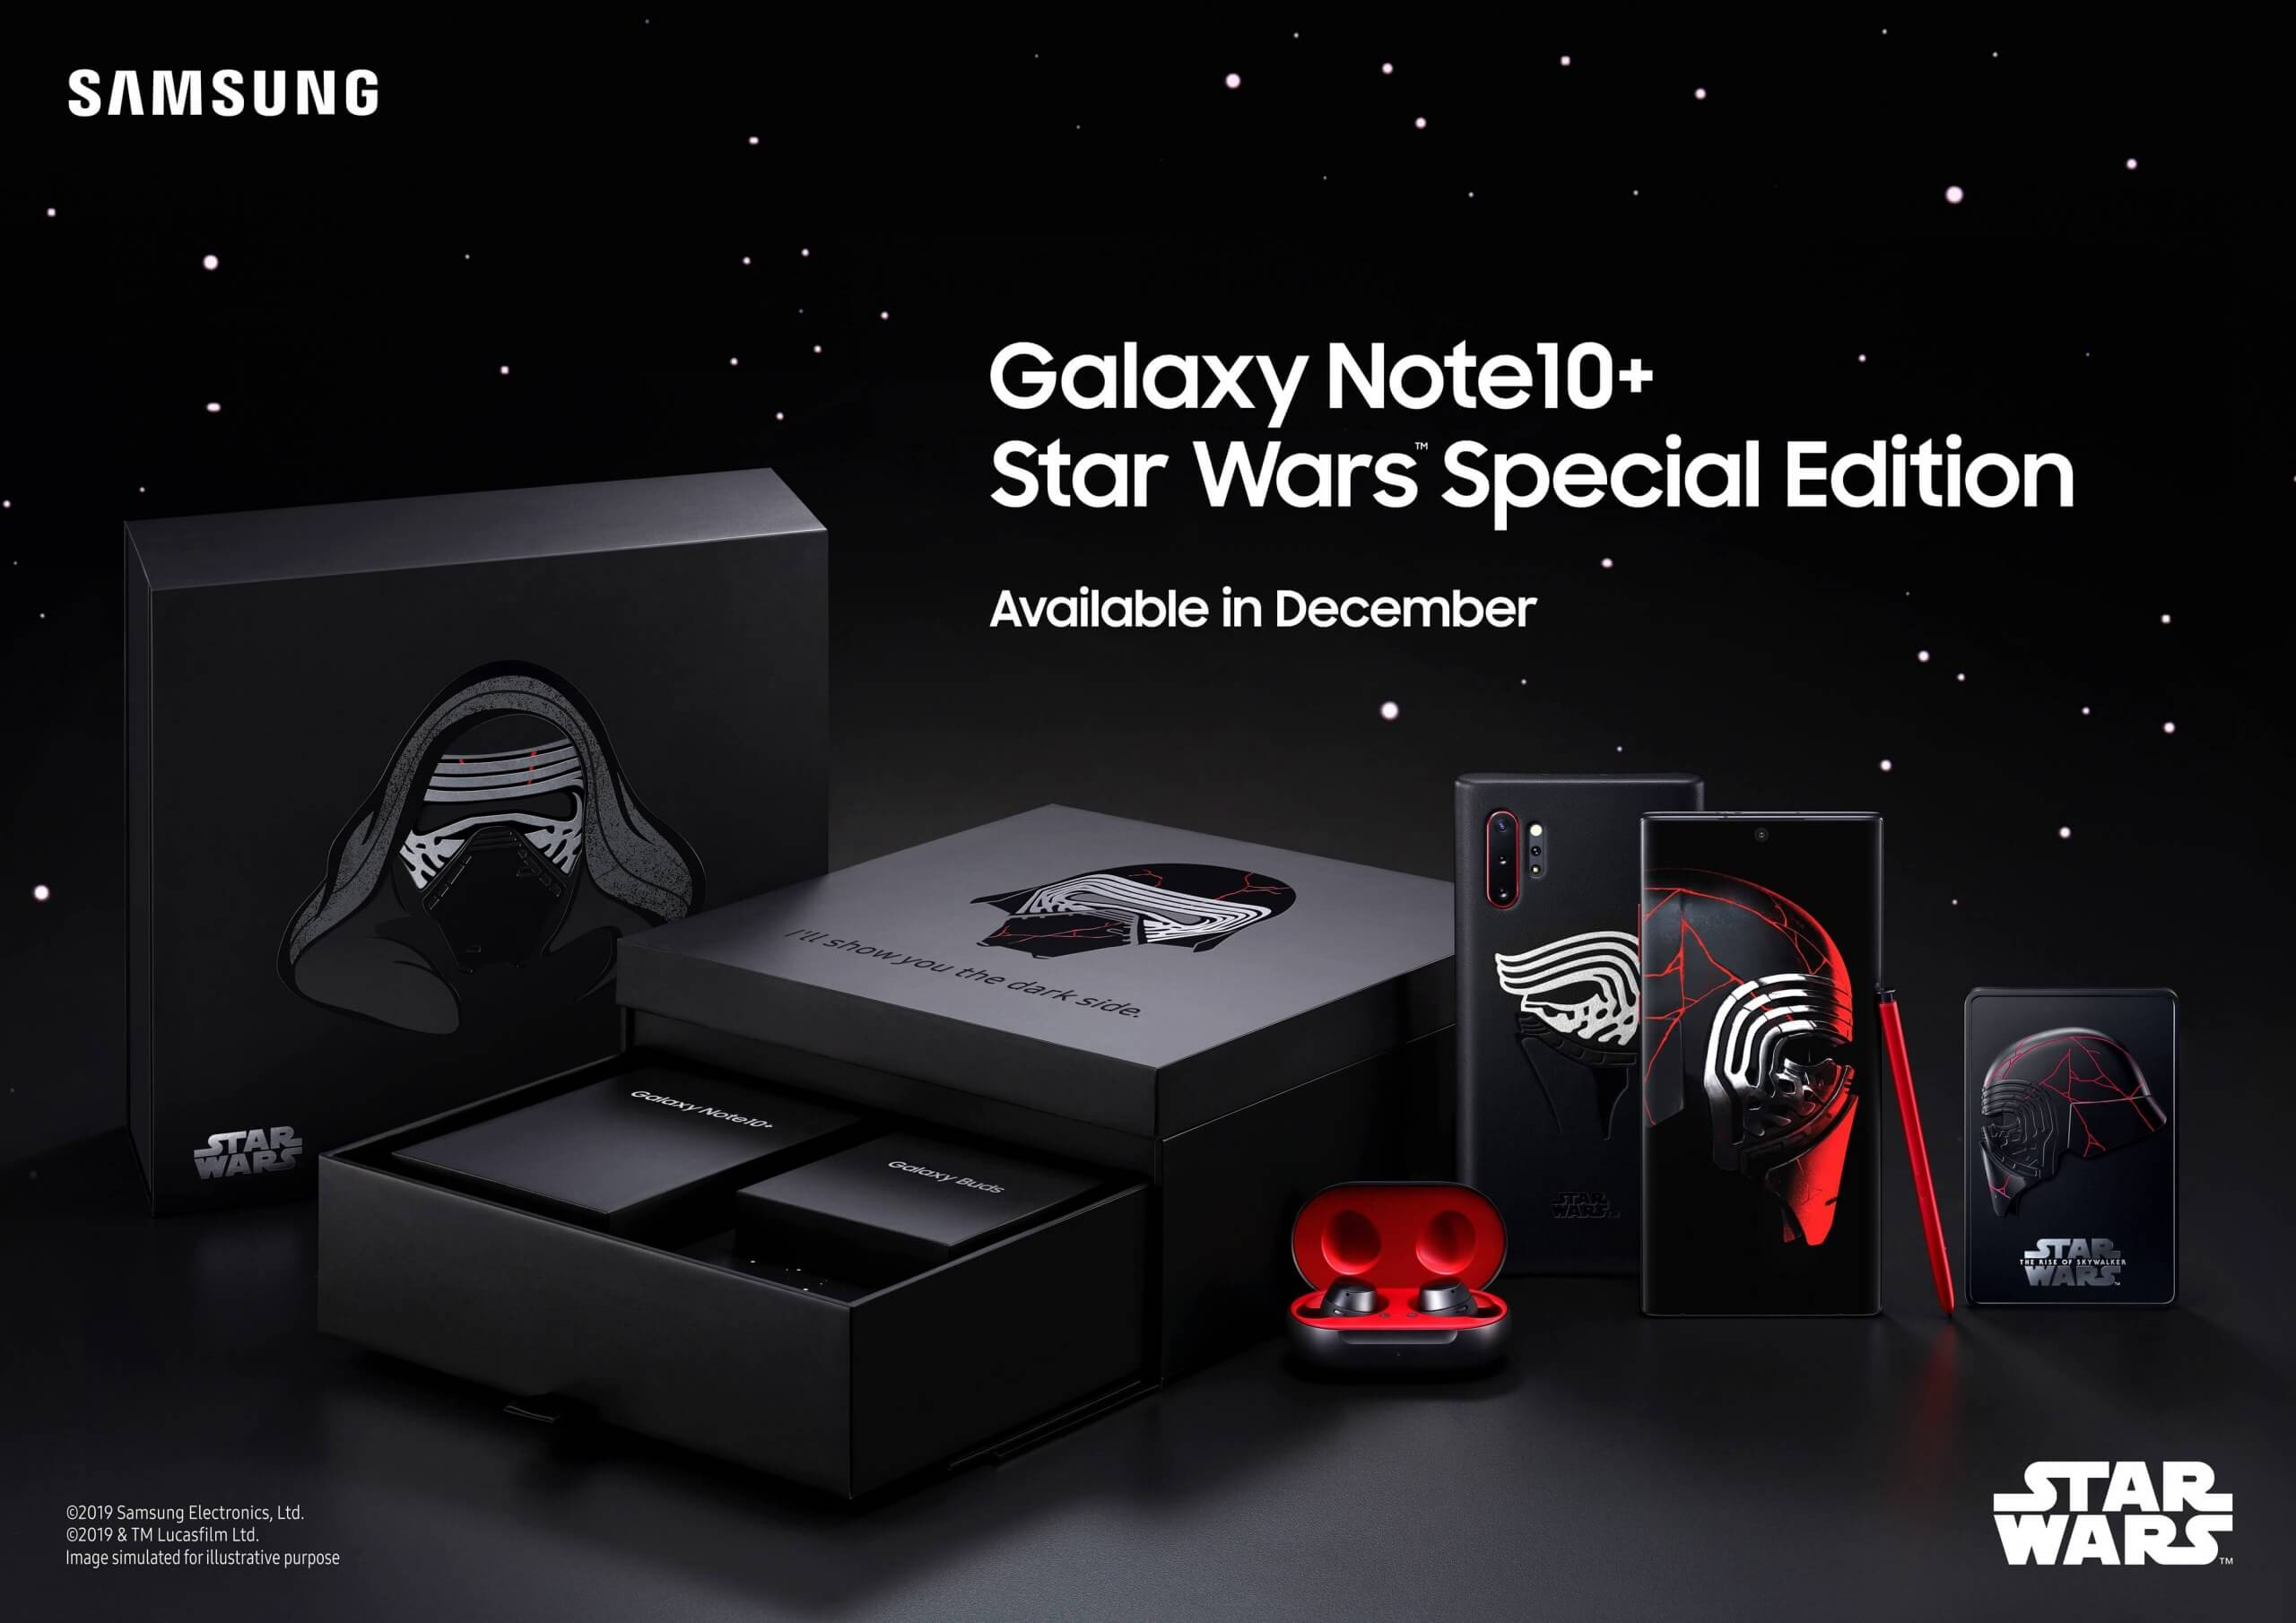 Samsung has a 'Dark Side' Galaxy Note 10 Plus bundle coming next month